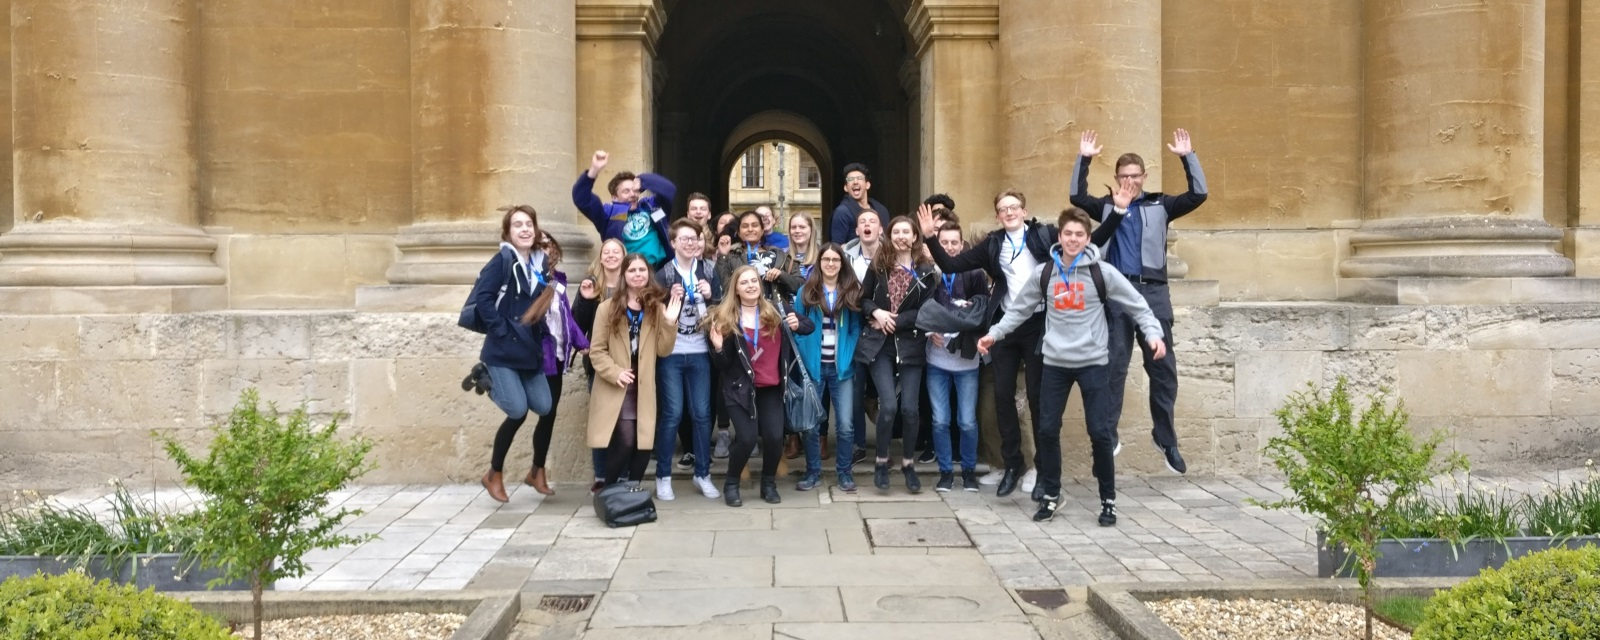 The Queen's College Science Residential